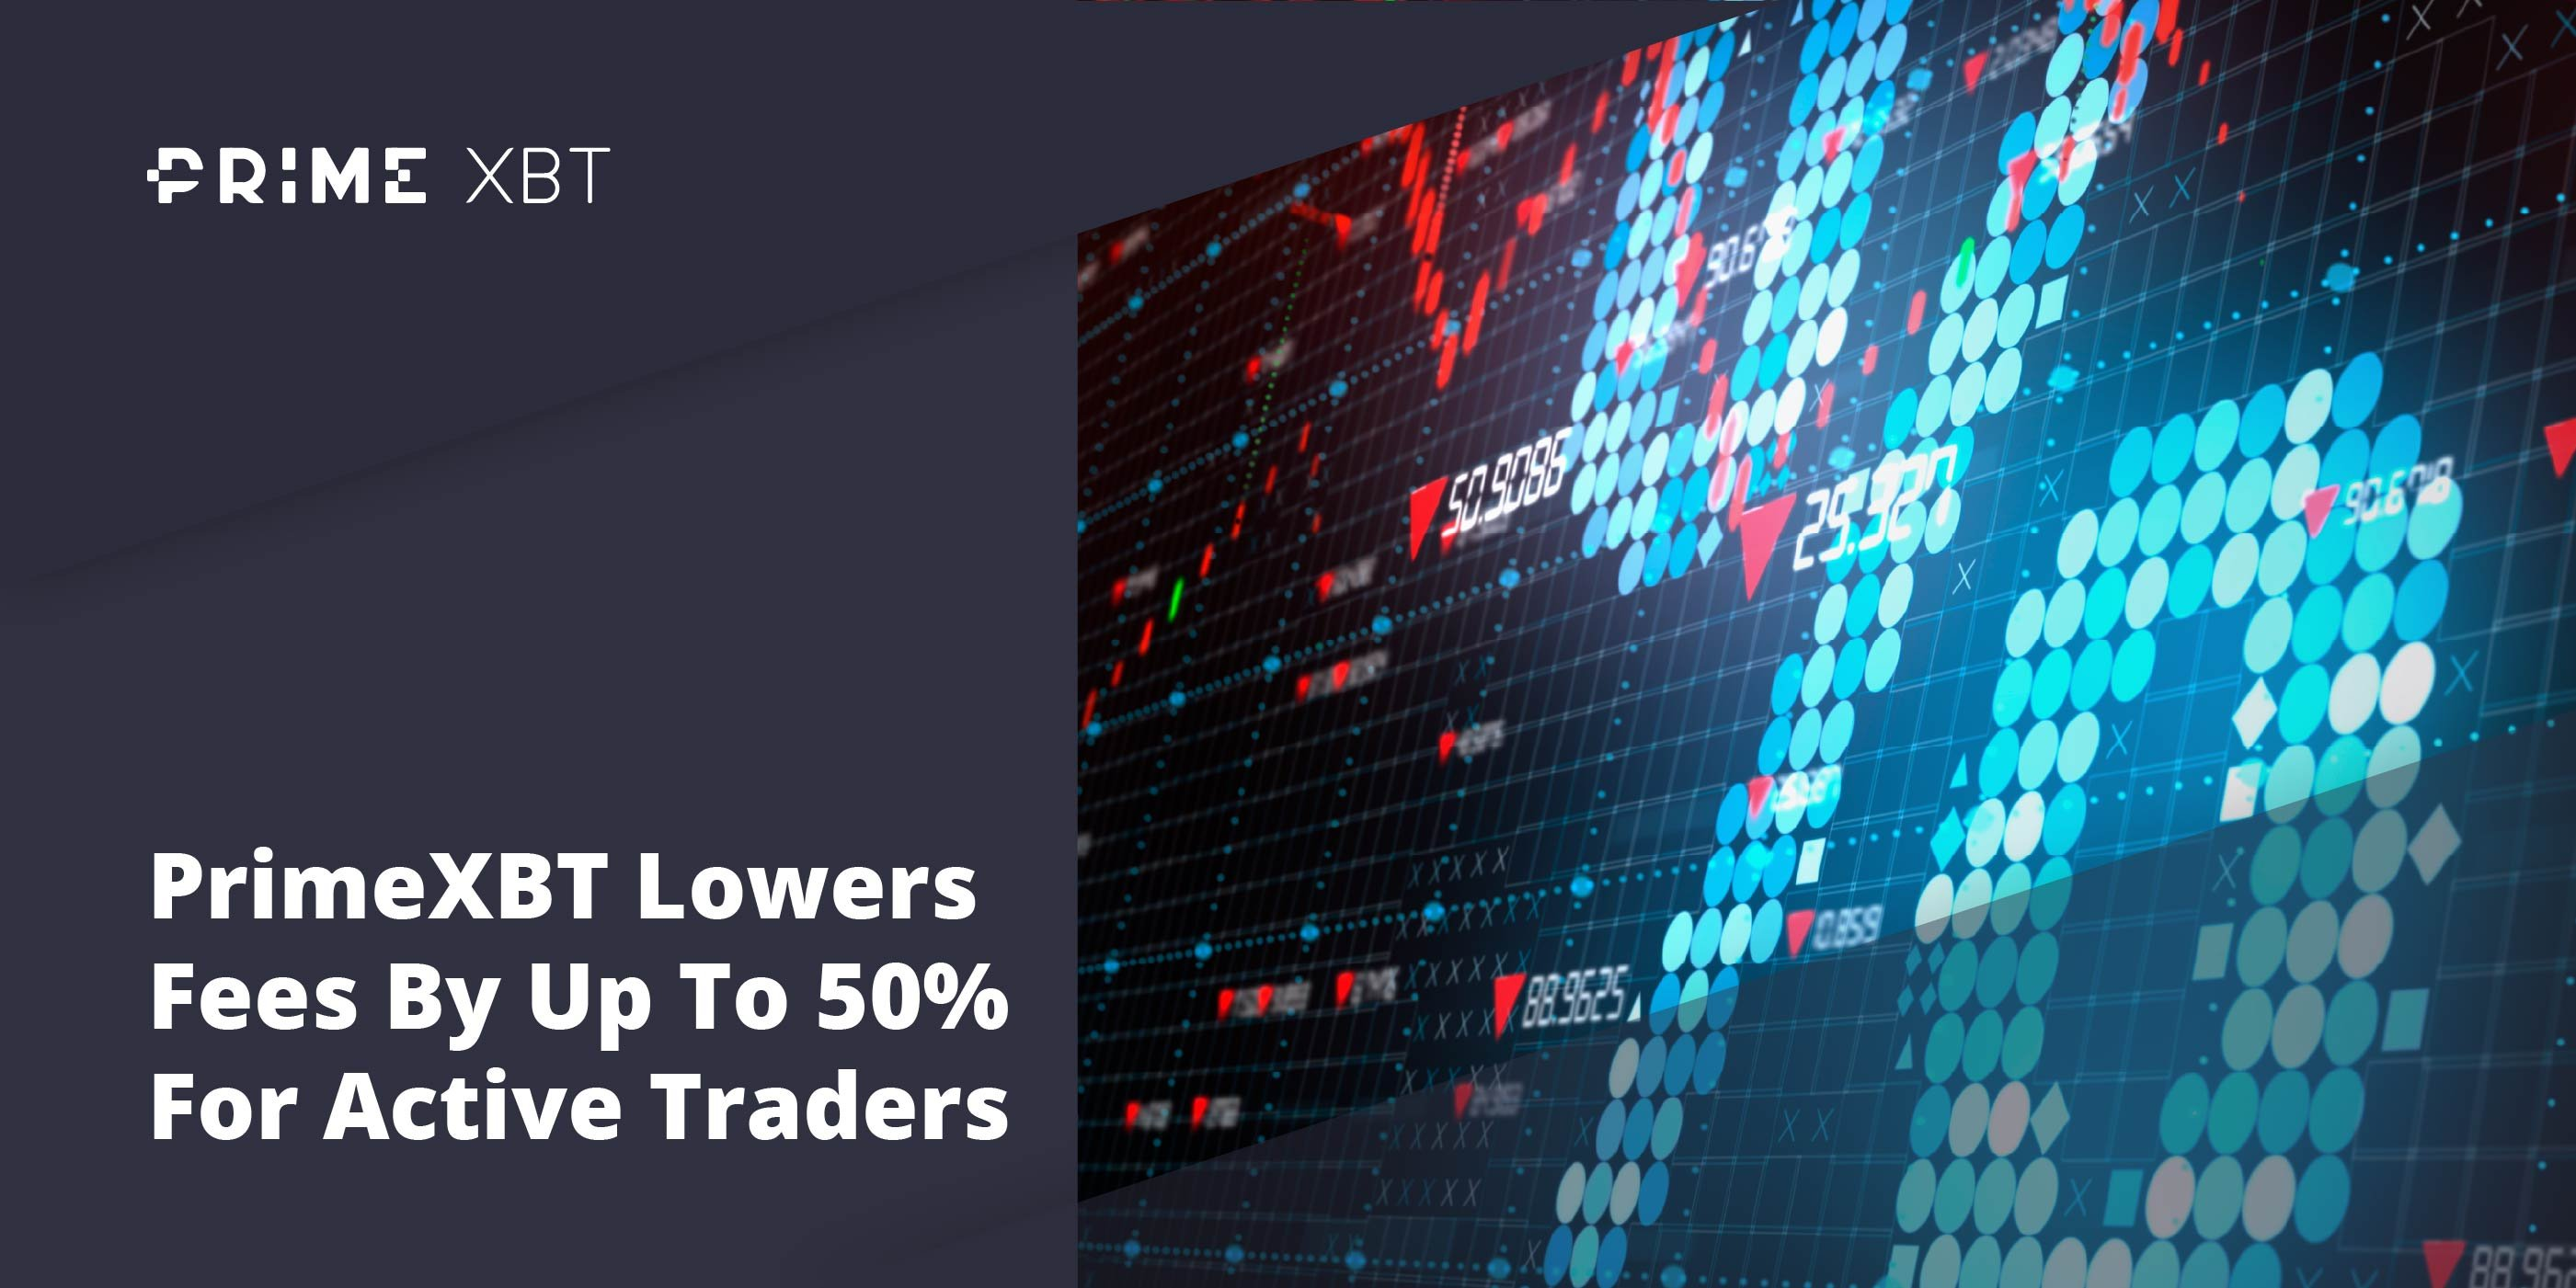 PrimeXBT Lowers Fees For Active Traders - 31.11 Fees